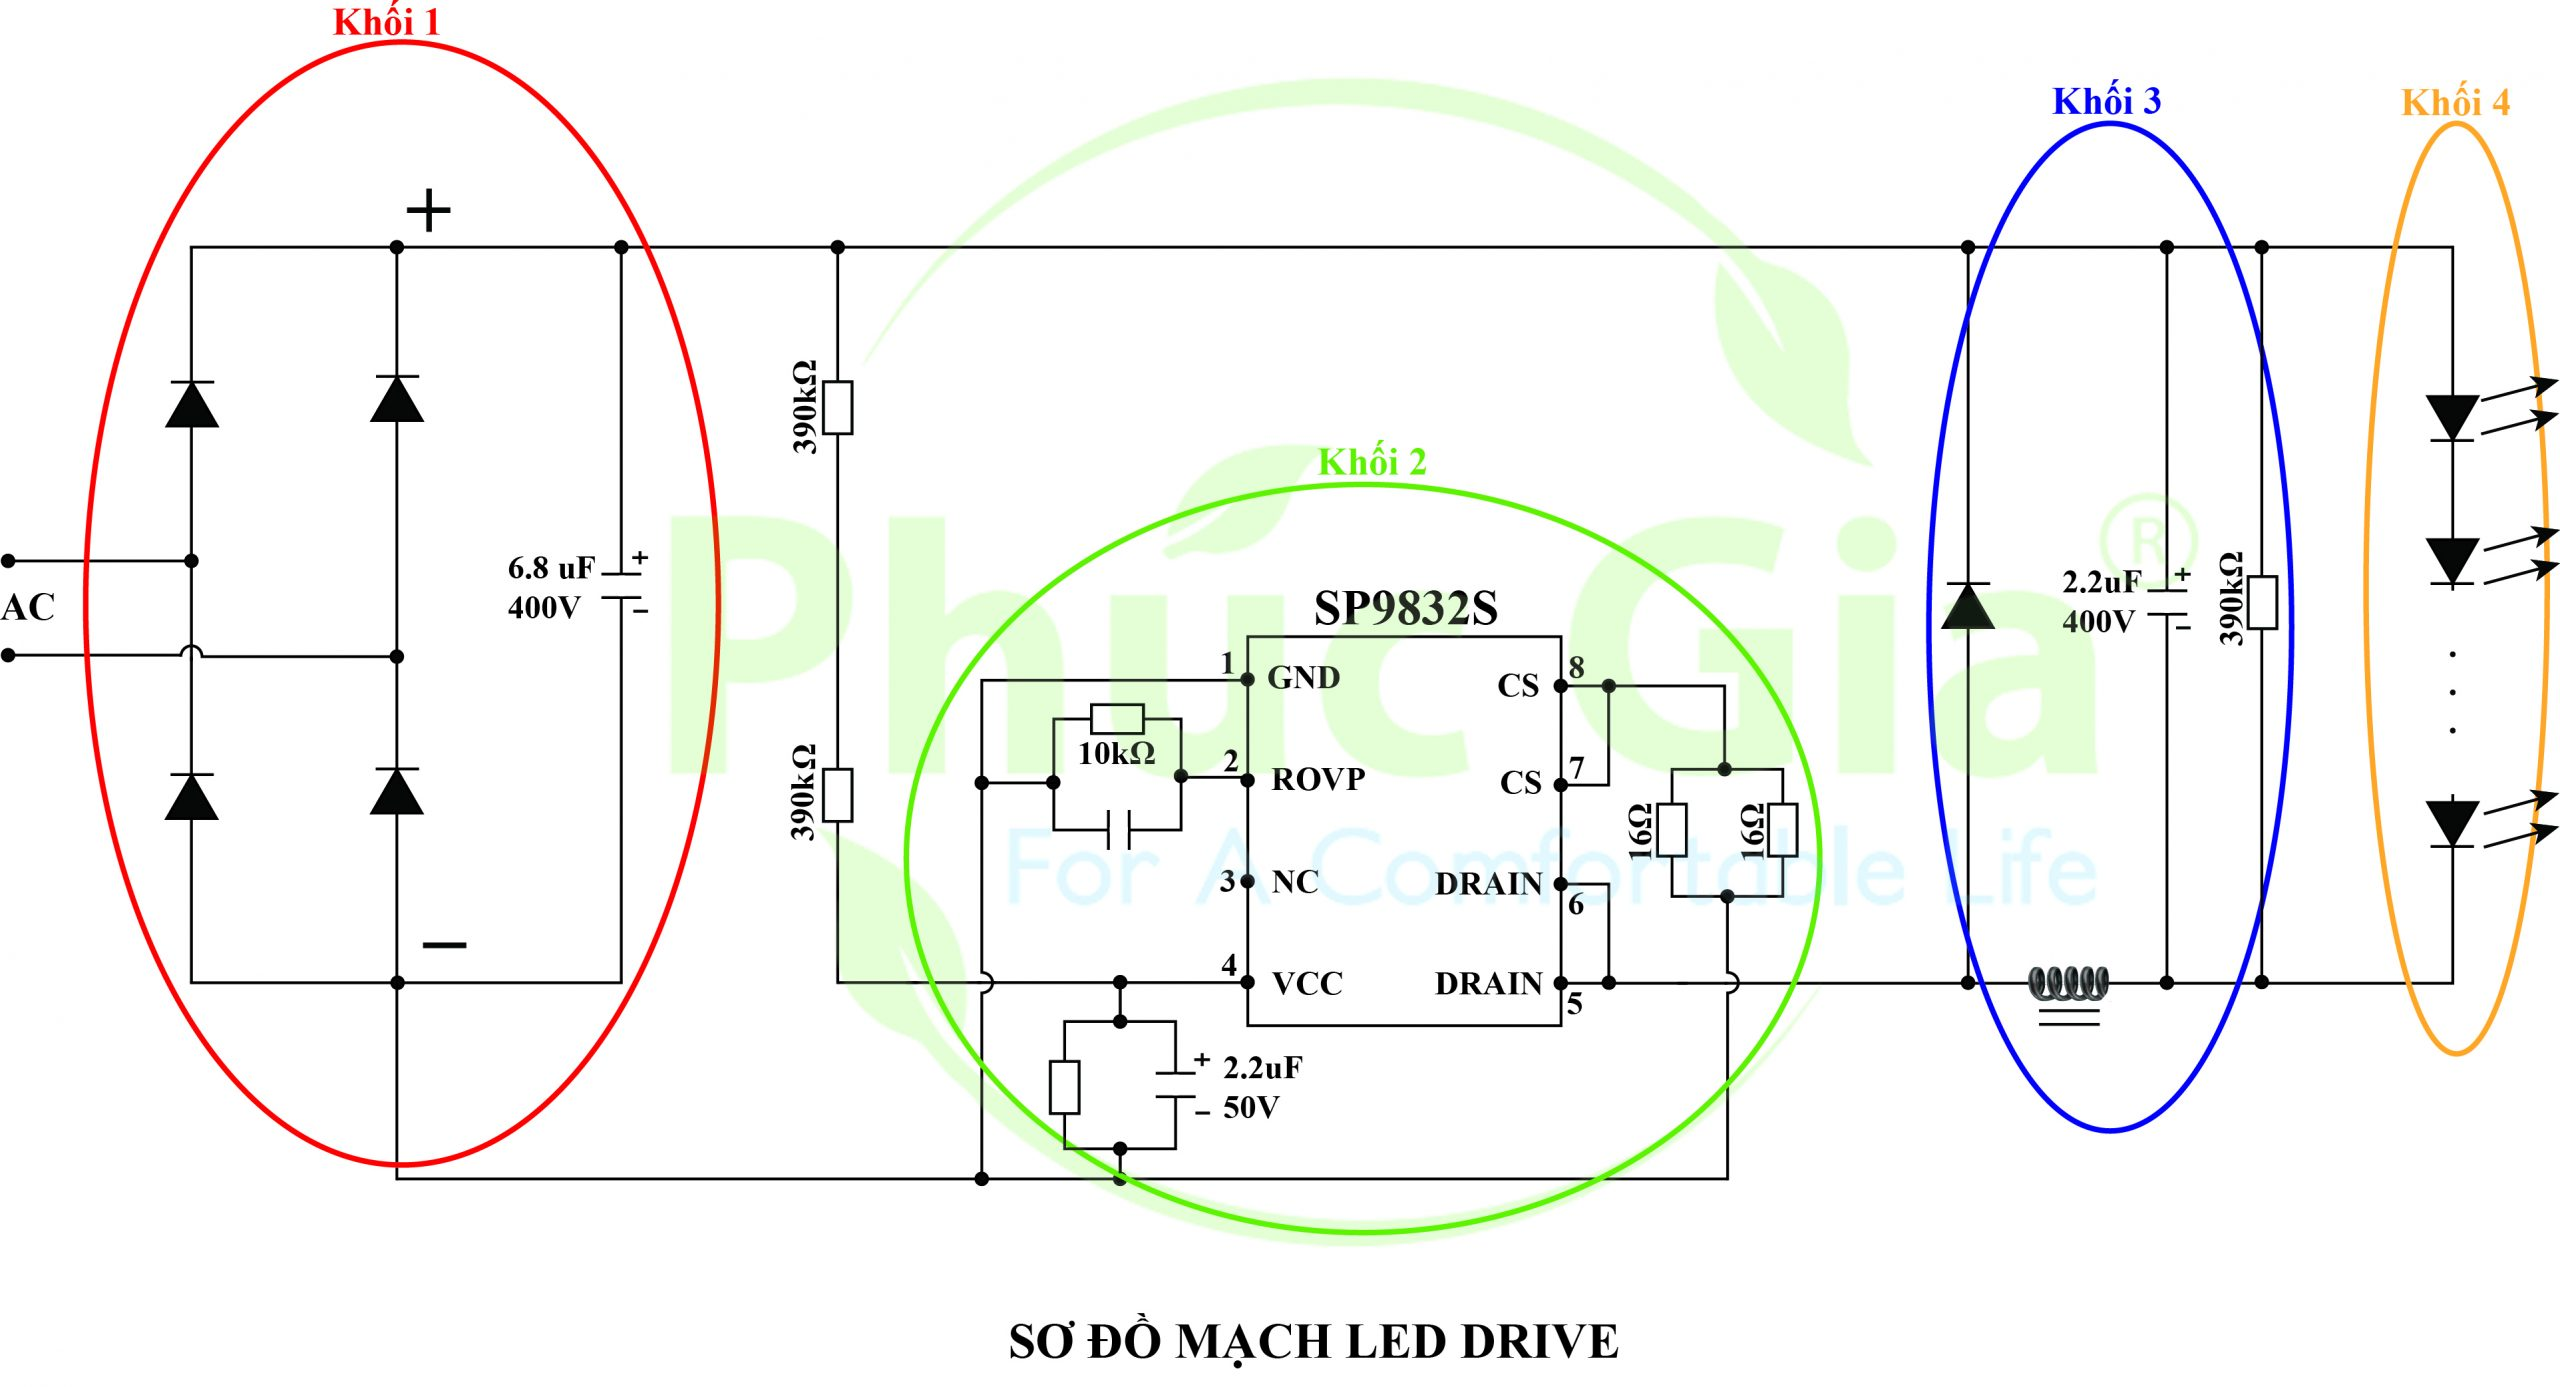 So_Do_Mach_Led_Drive